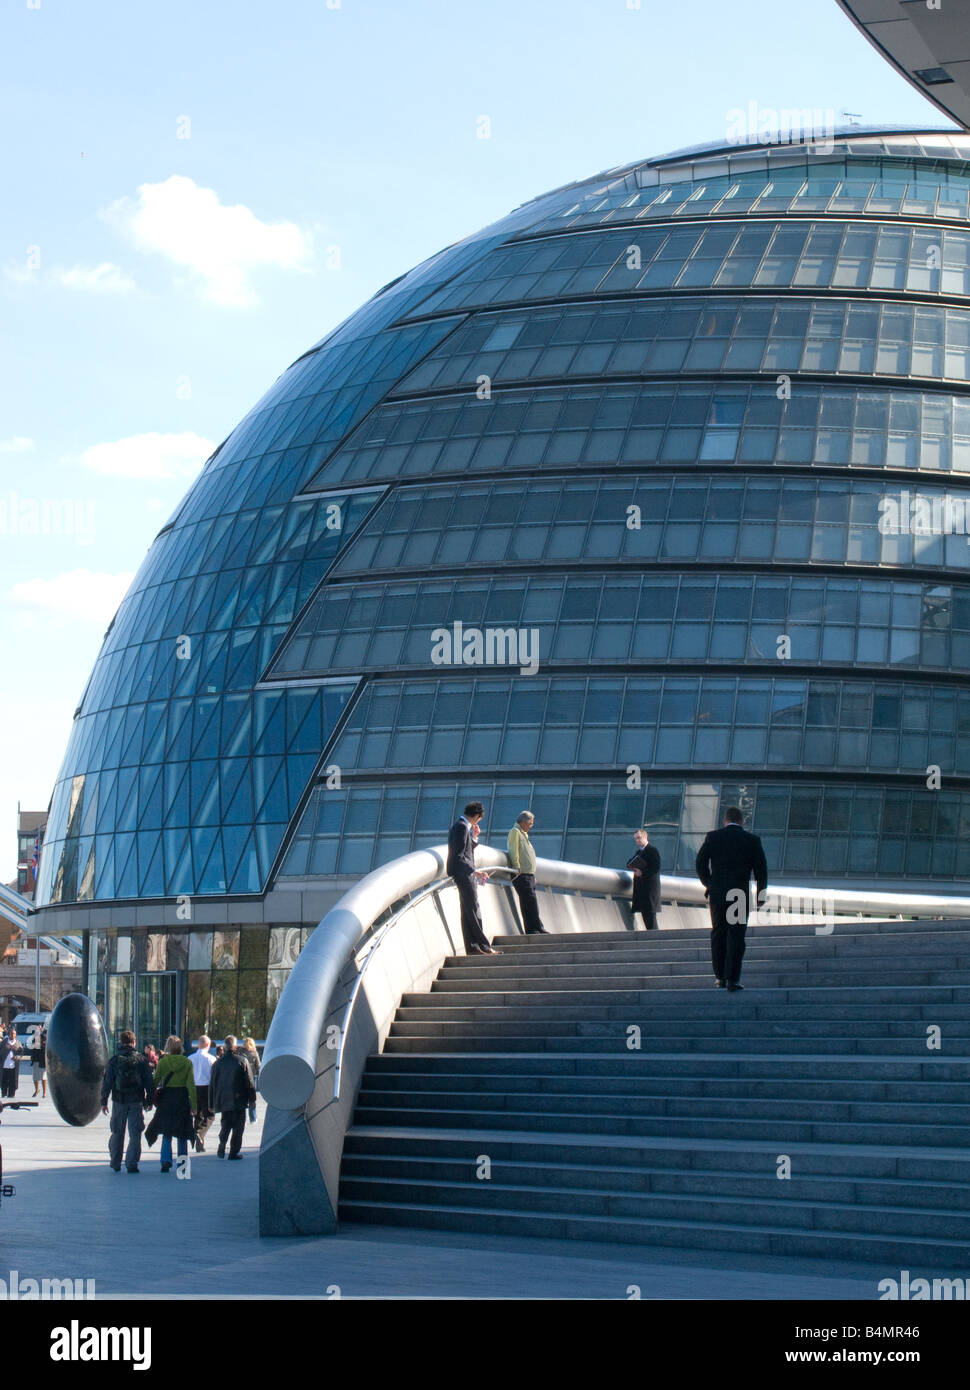 City Hall, London. Headquarters for the mayor of London and the London Assembly. - Stock Image